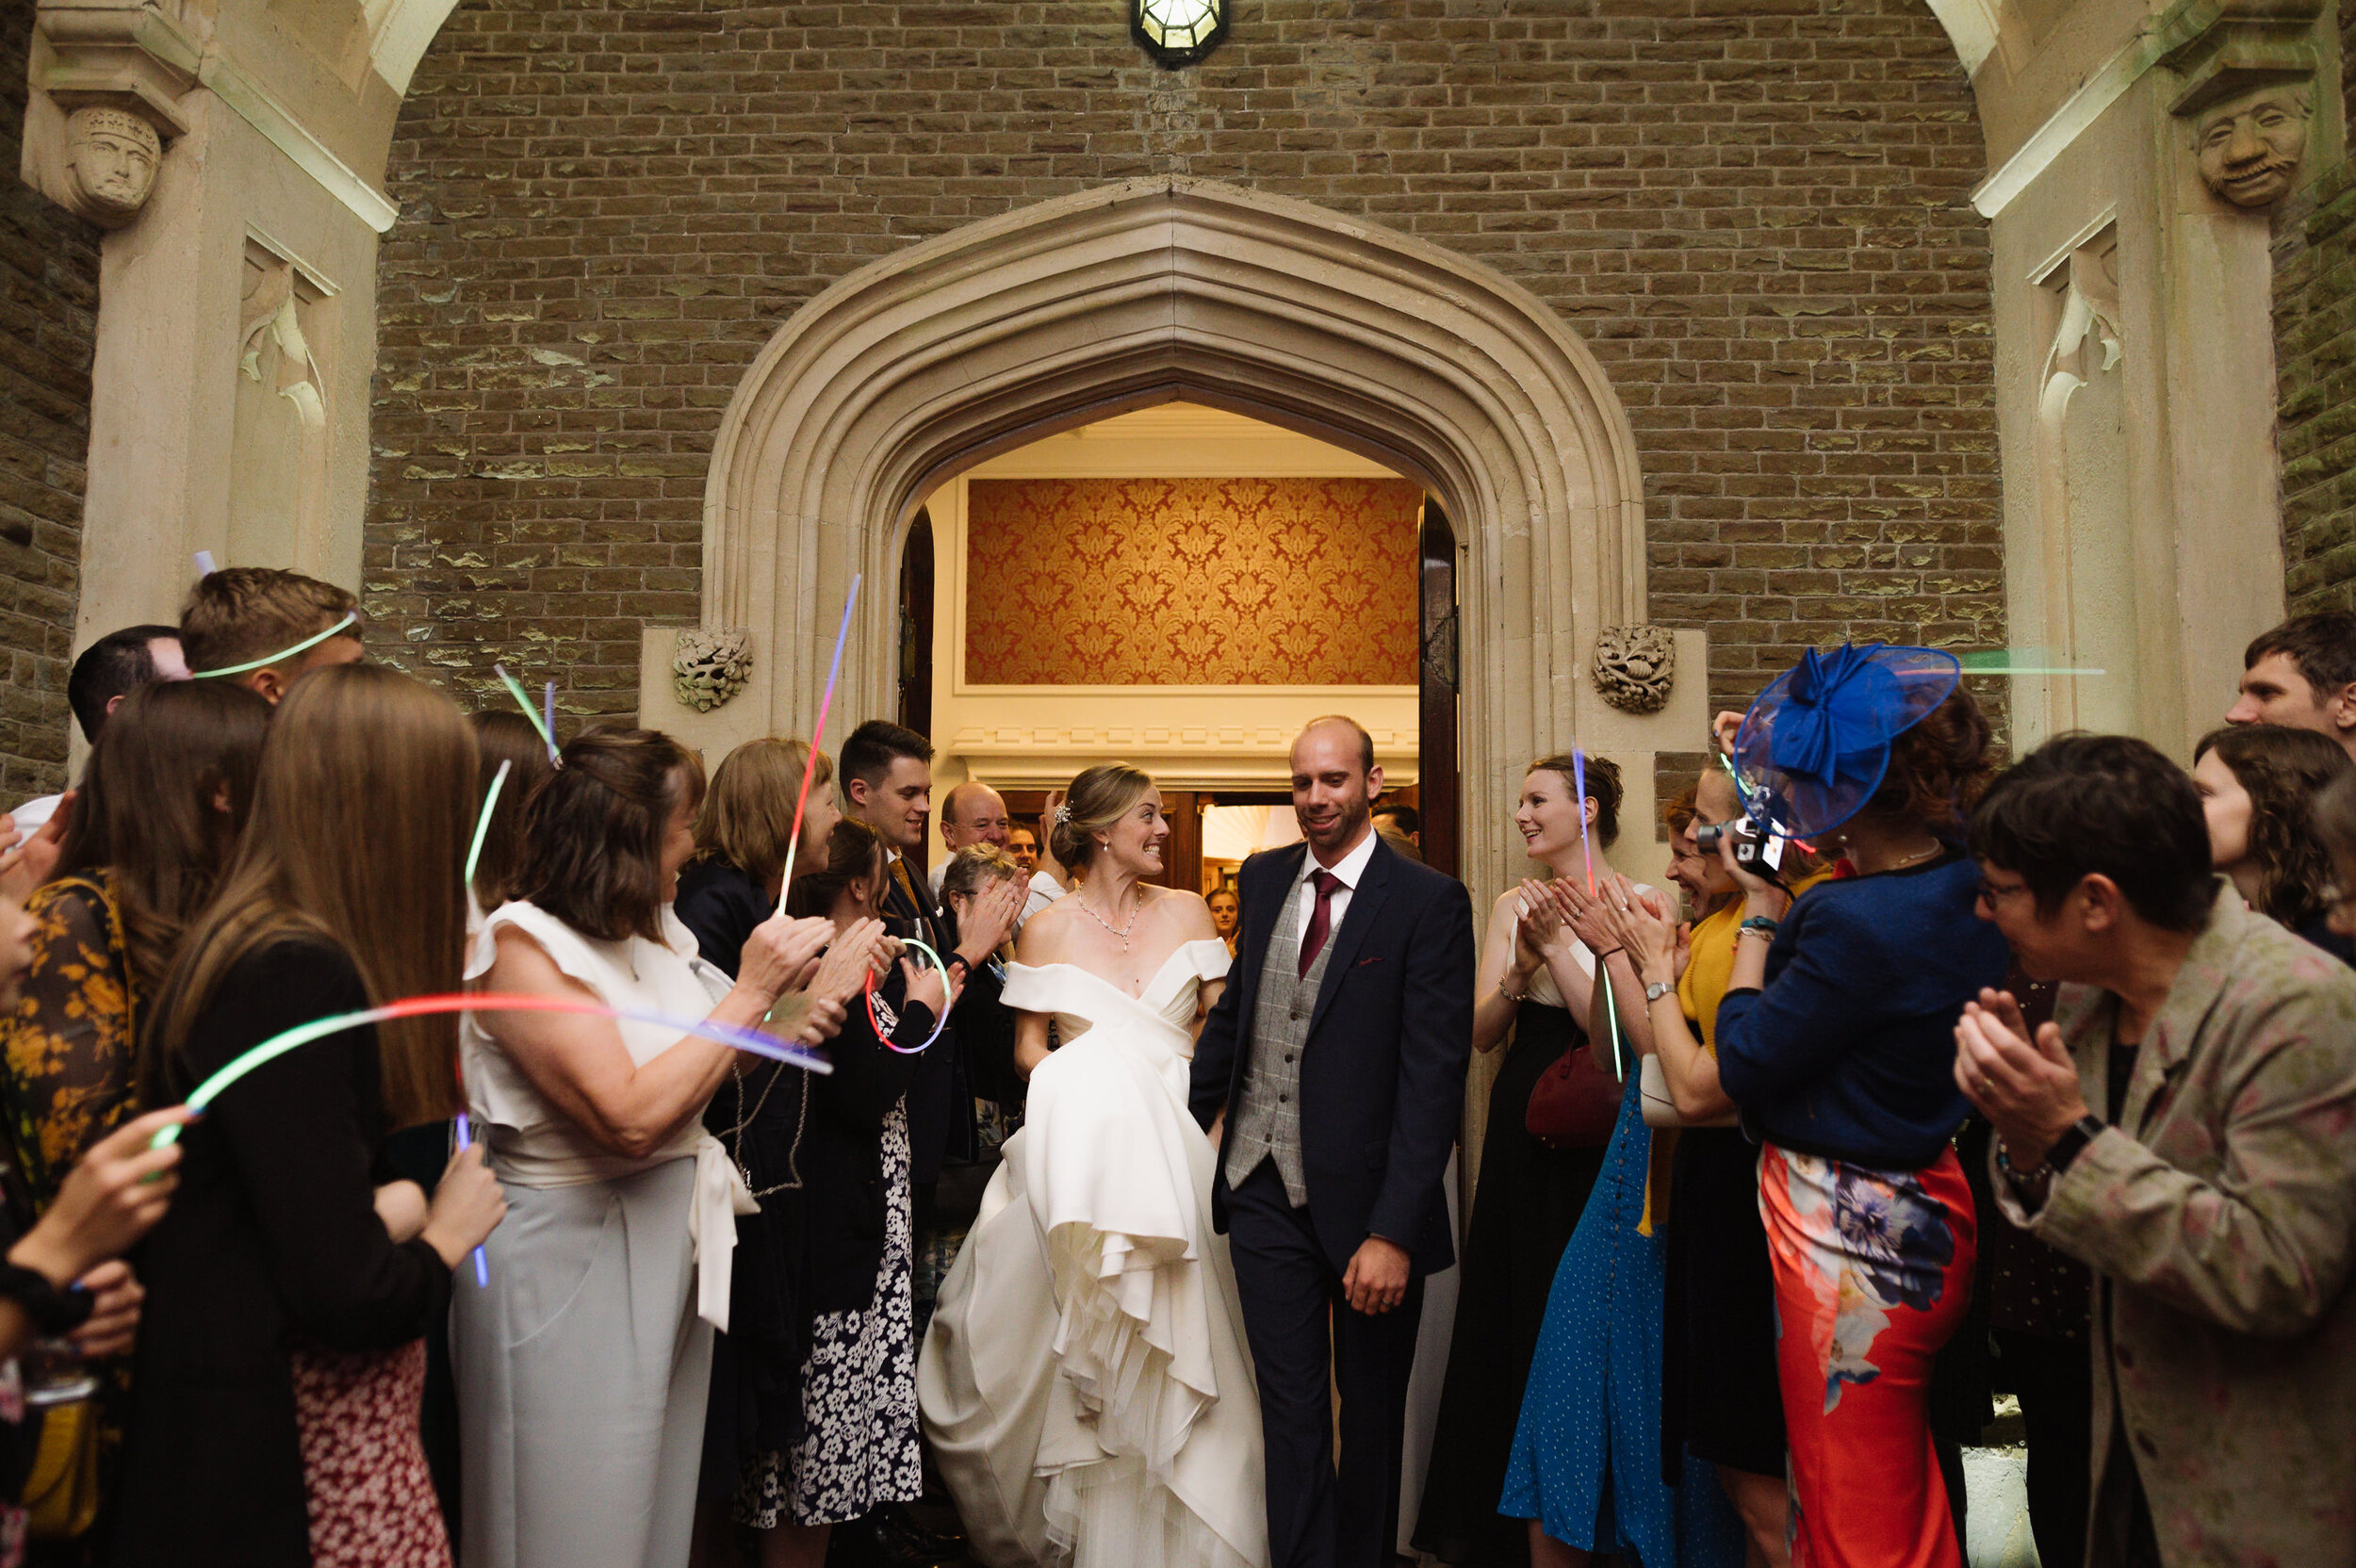 Wedding Photography Hensol Castle Vale of Glamorgan.jpg